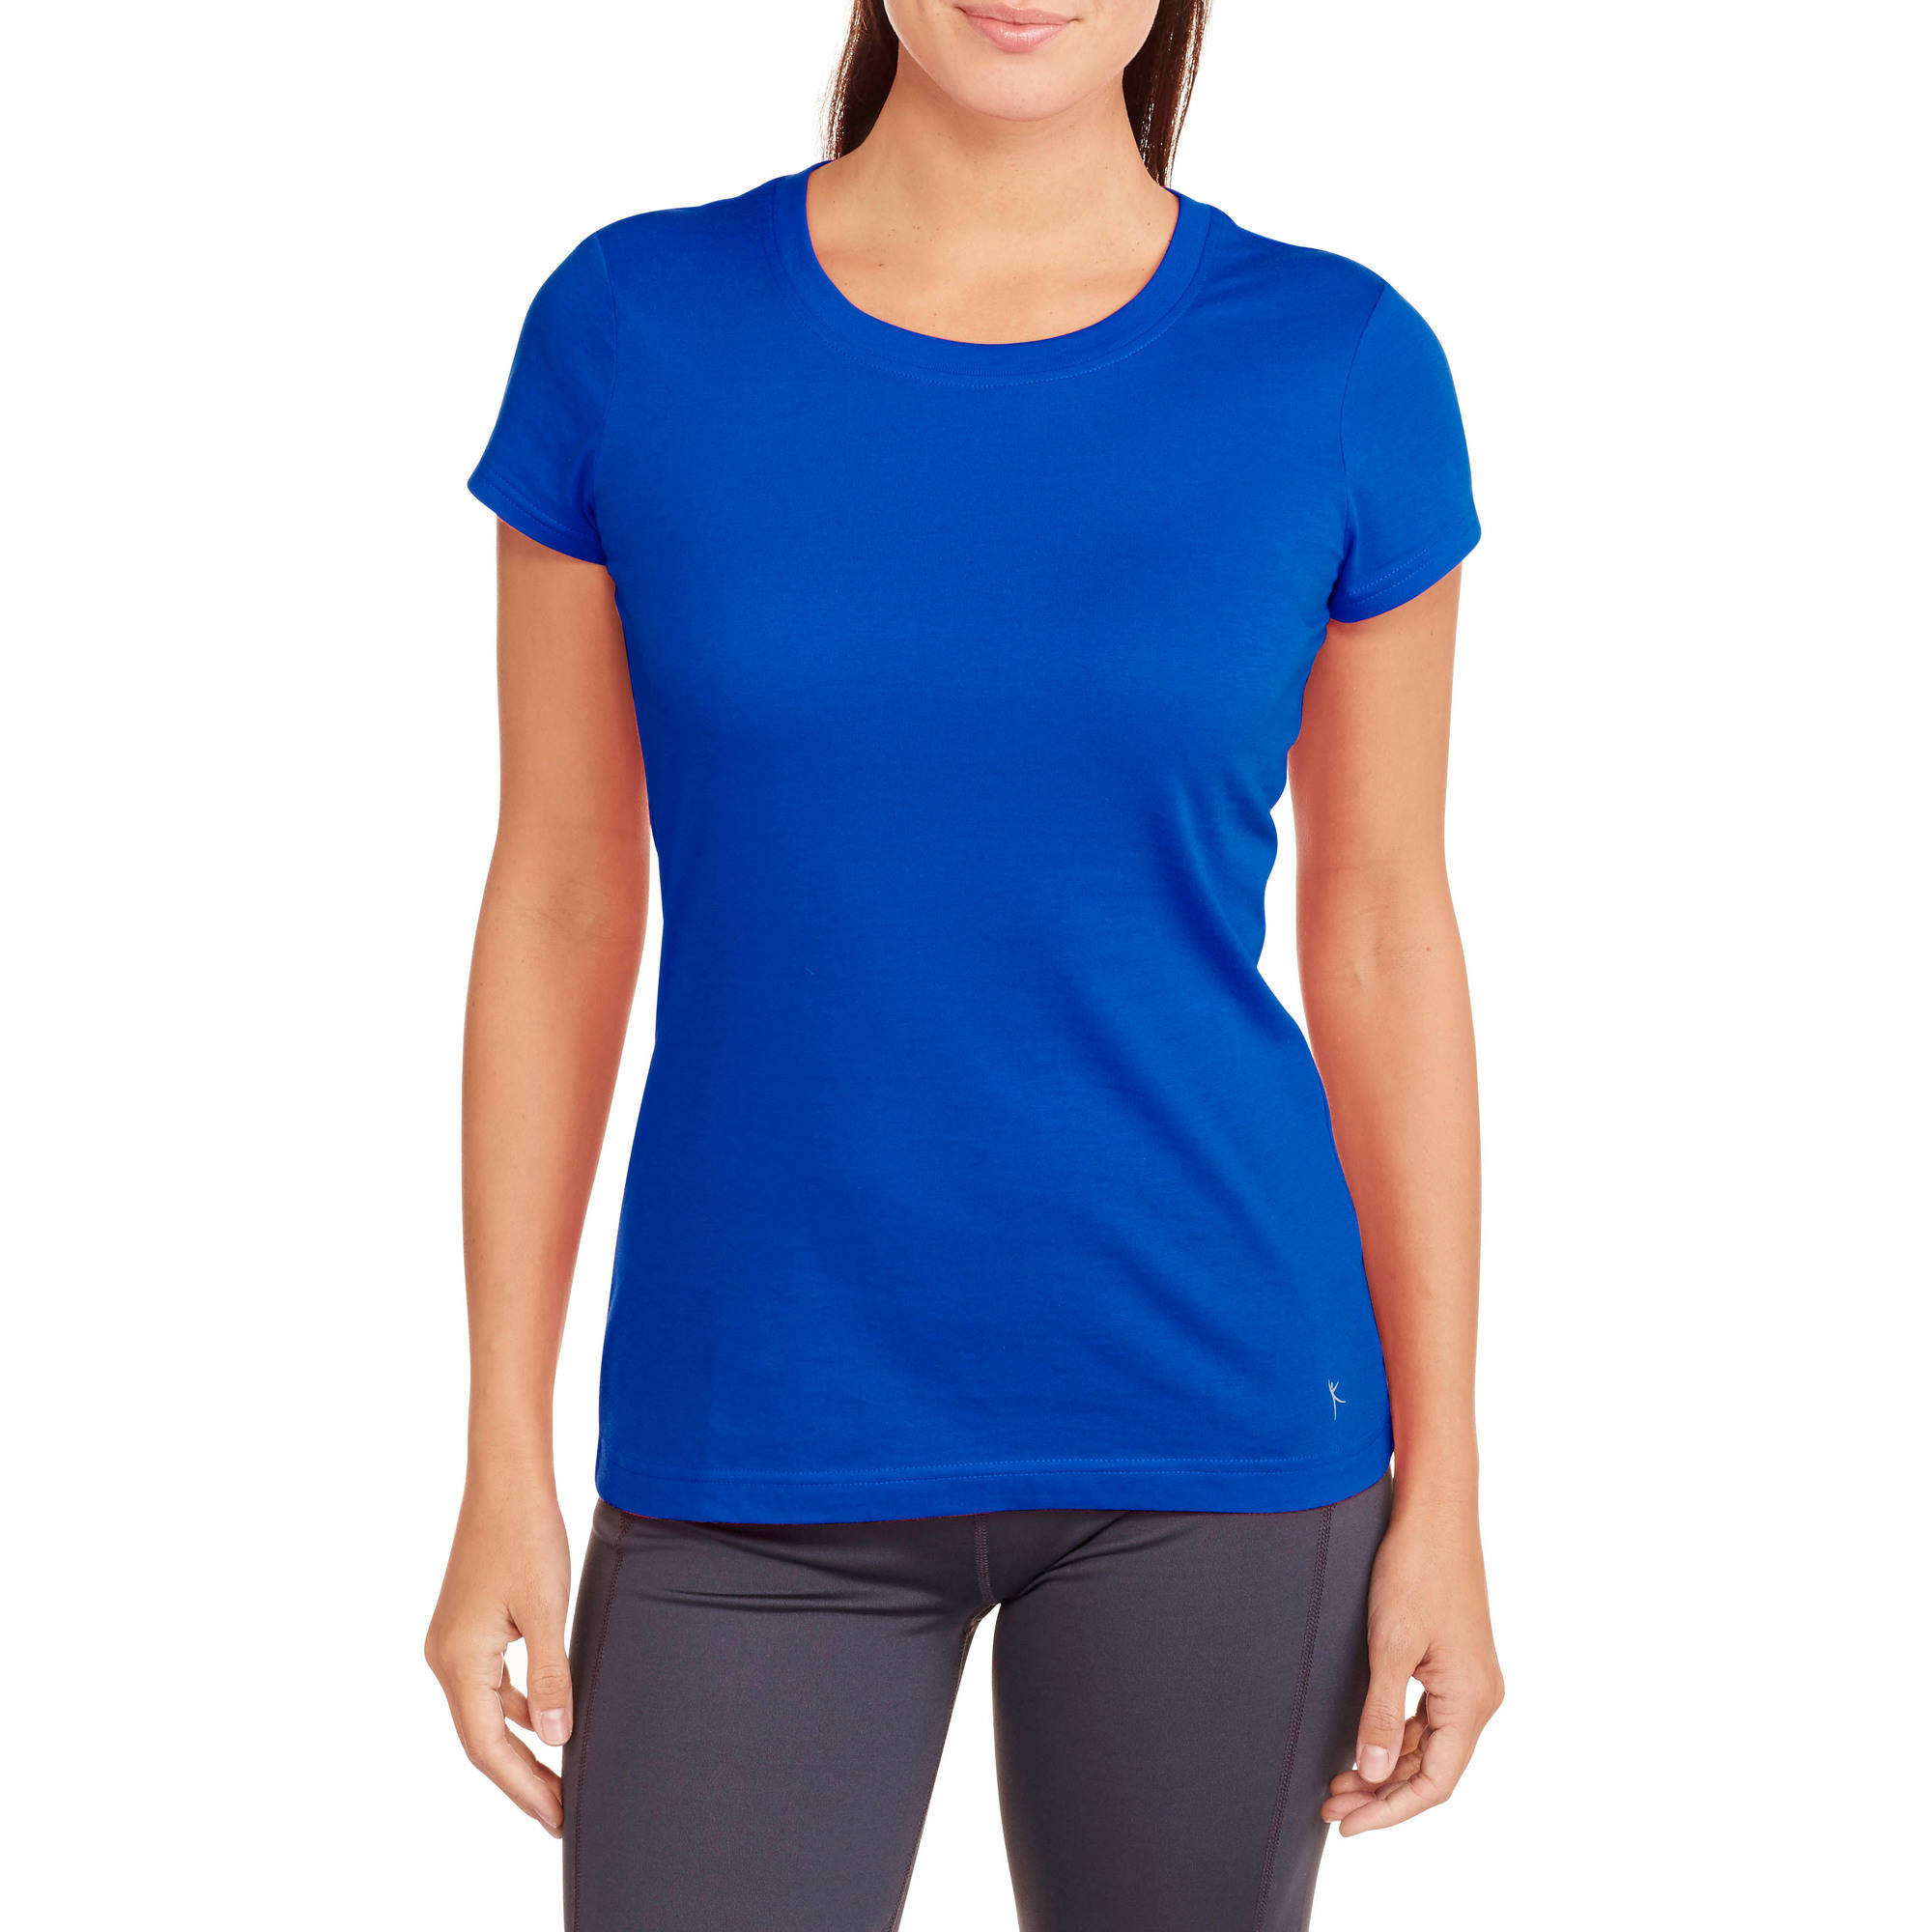 Danskin Now Women's Core Dri-More Crew Neck T-Shirt